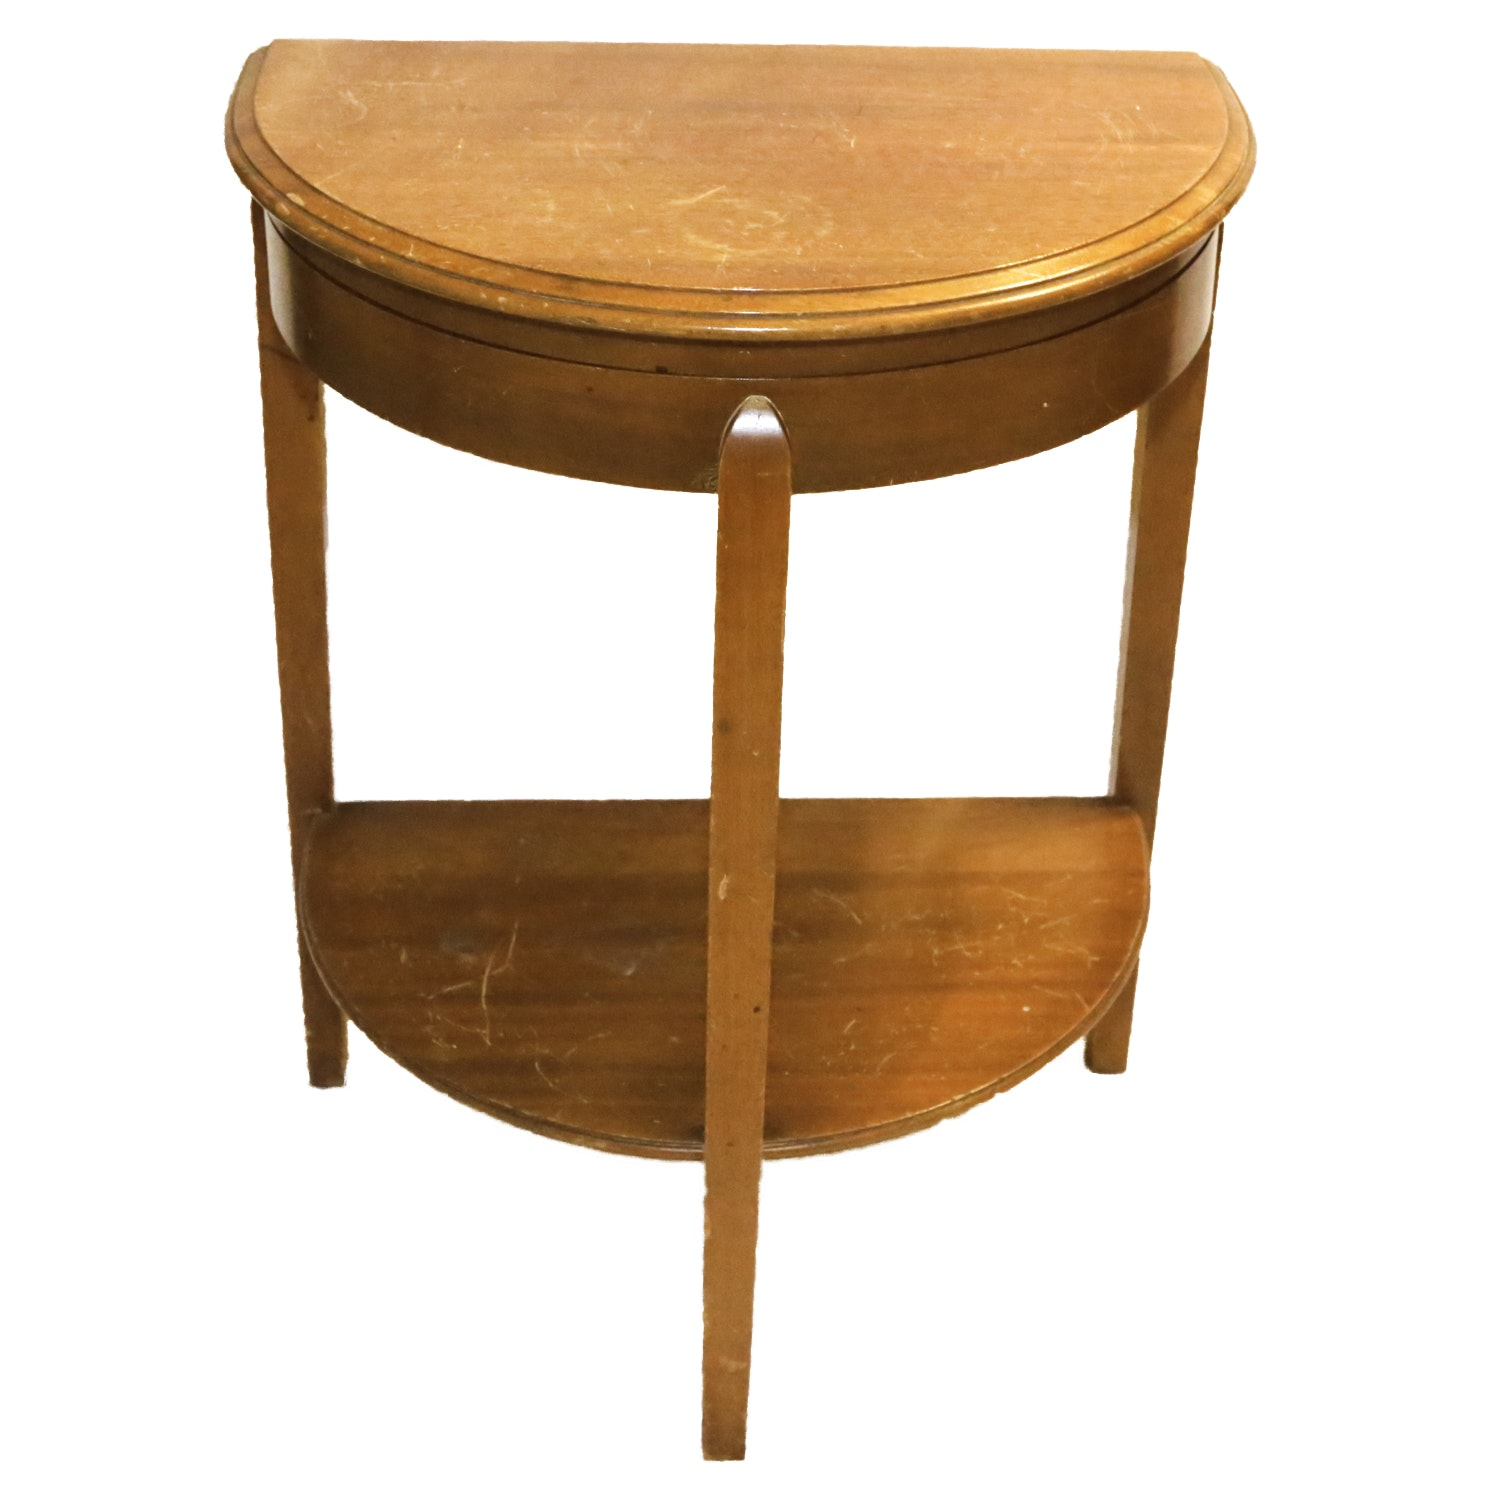 Vintage Mahogany Demilune Table with Flatware Storage